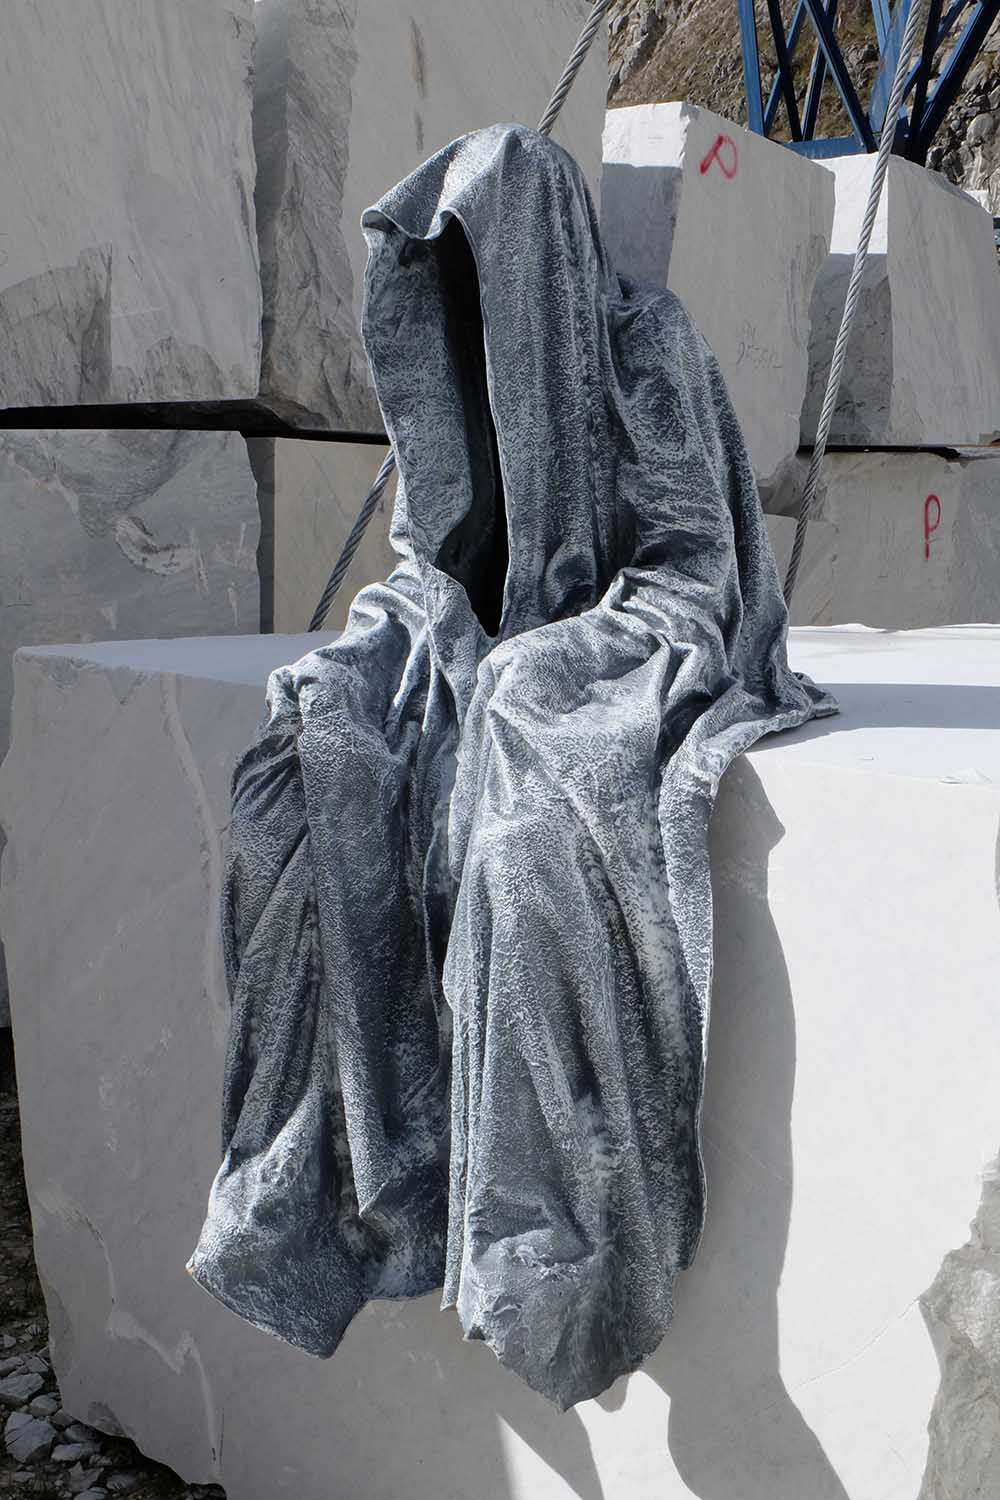 guardians of time manfred kili kielnhofer modern sculpture contemporary fine art design arts statue faceless religion stone marble carrara 1119